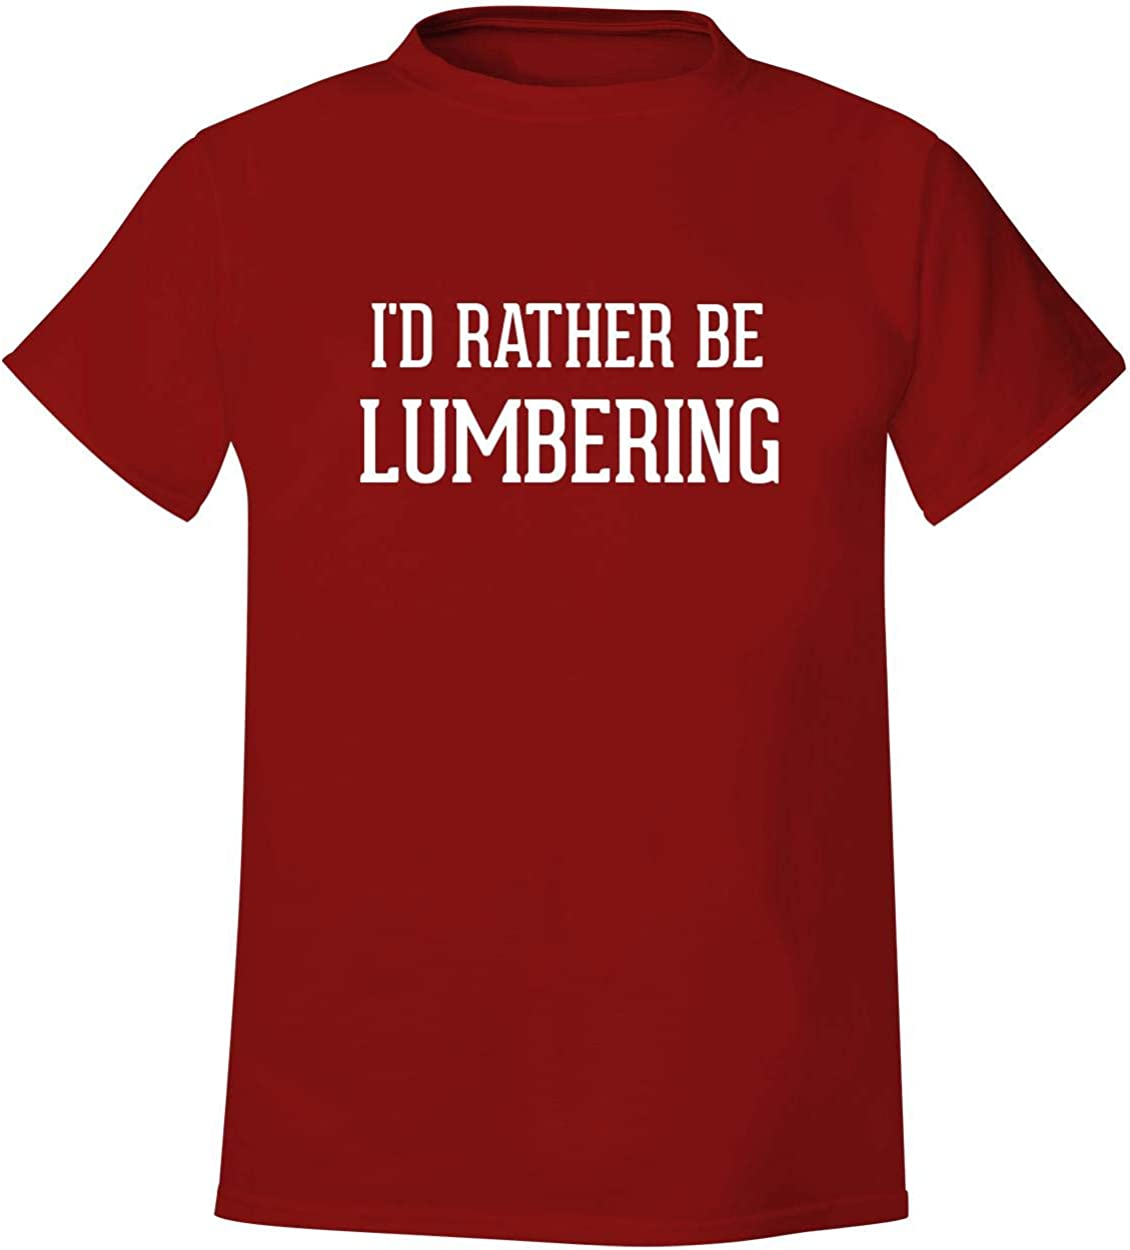 I'd Rather Be LUMBERING - Men's Soft & Comfortable T-Shirt